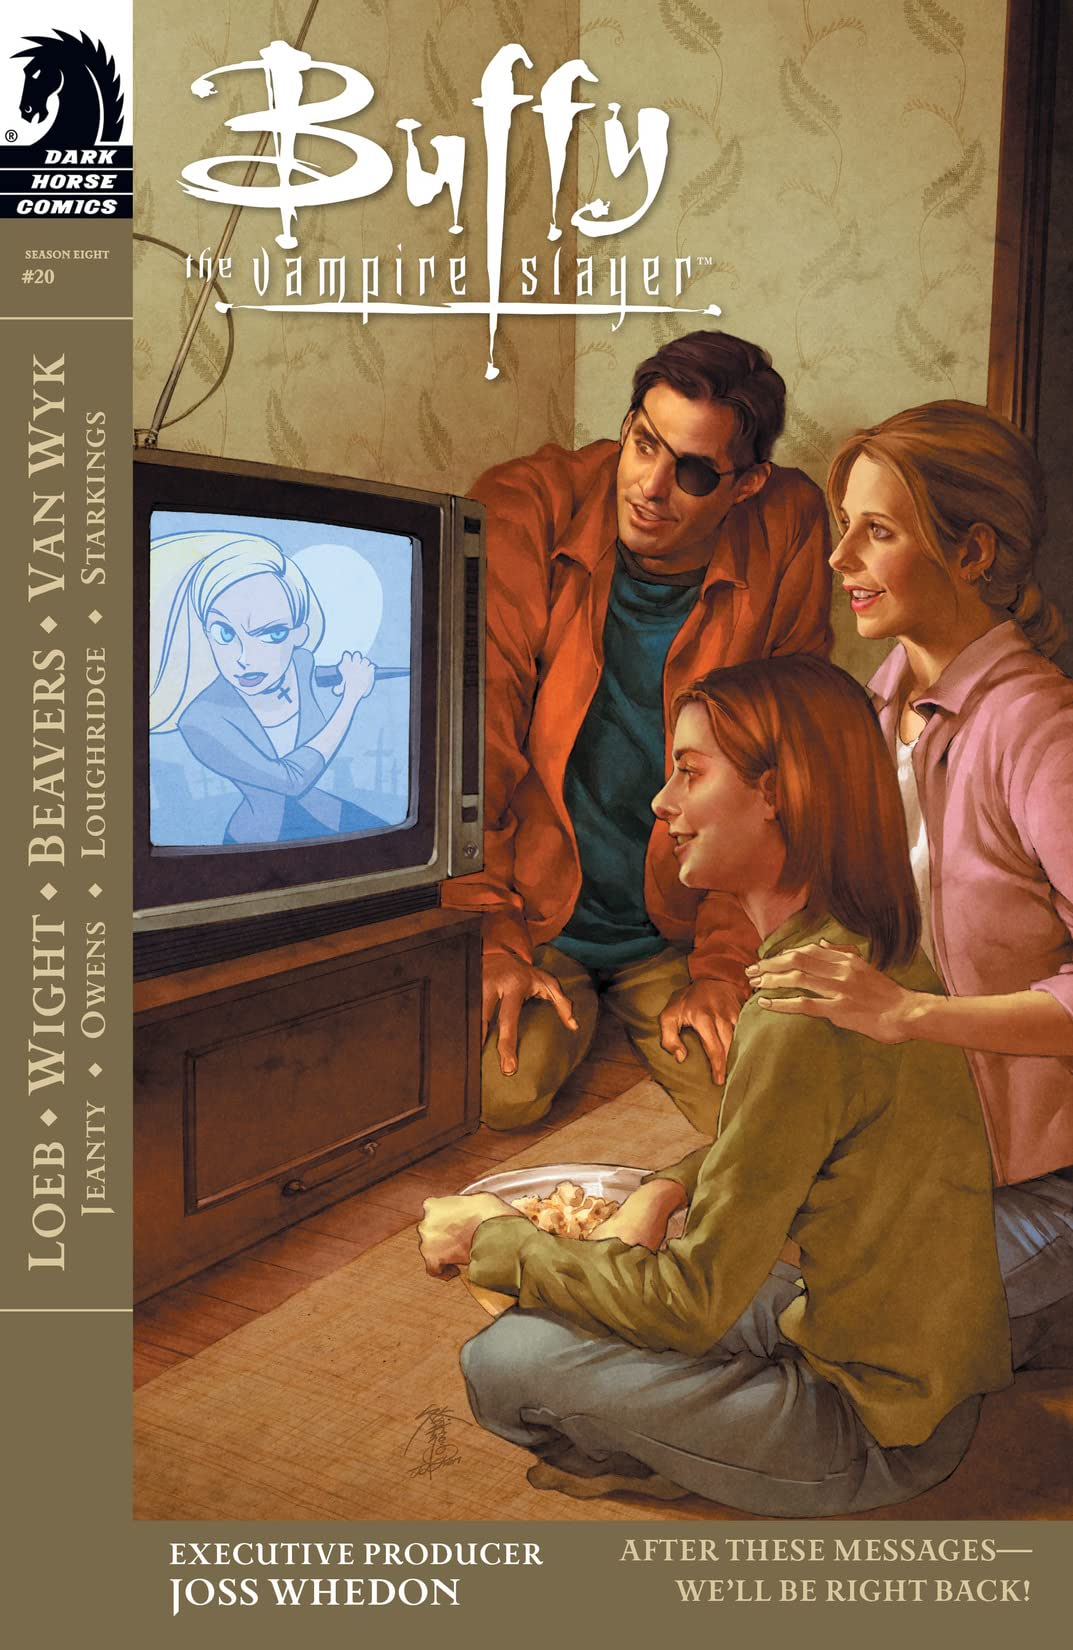 Buffy the Vampire Slayer: Season 8 #20